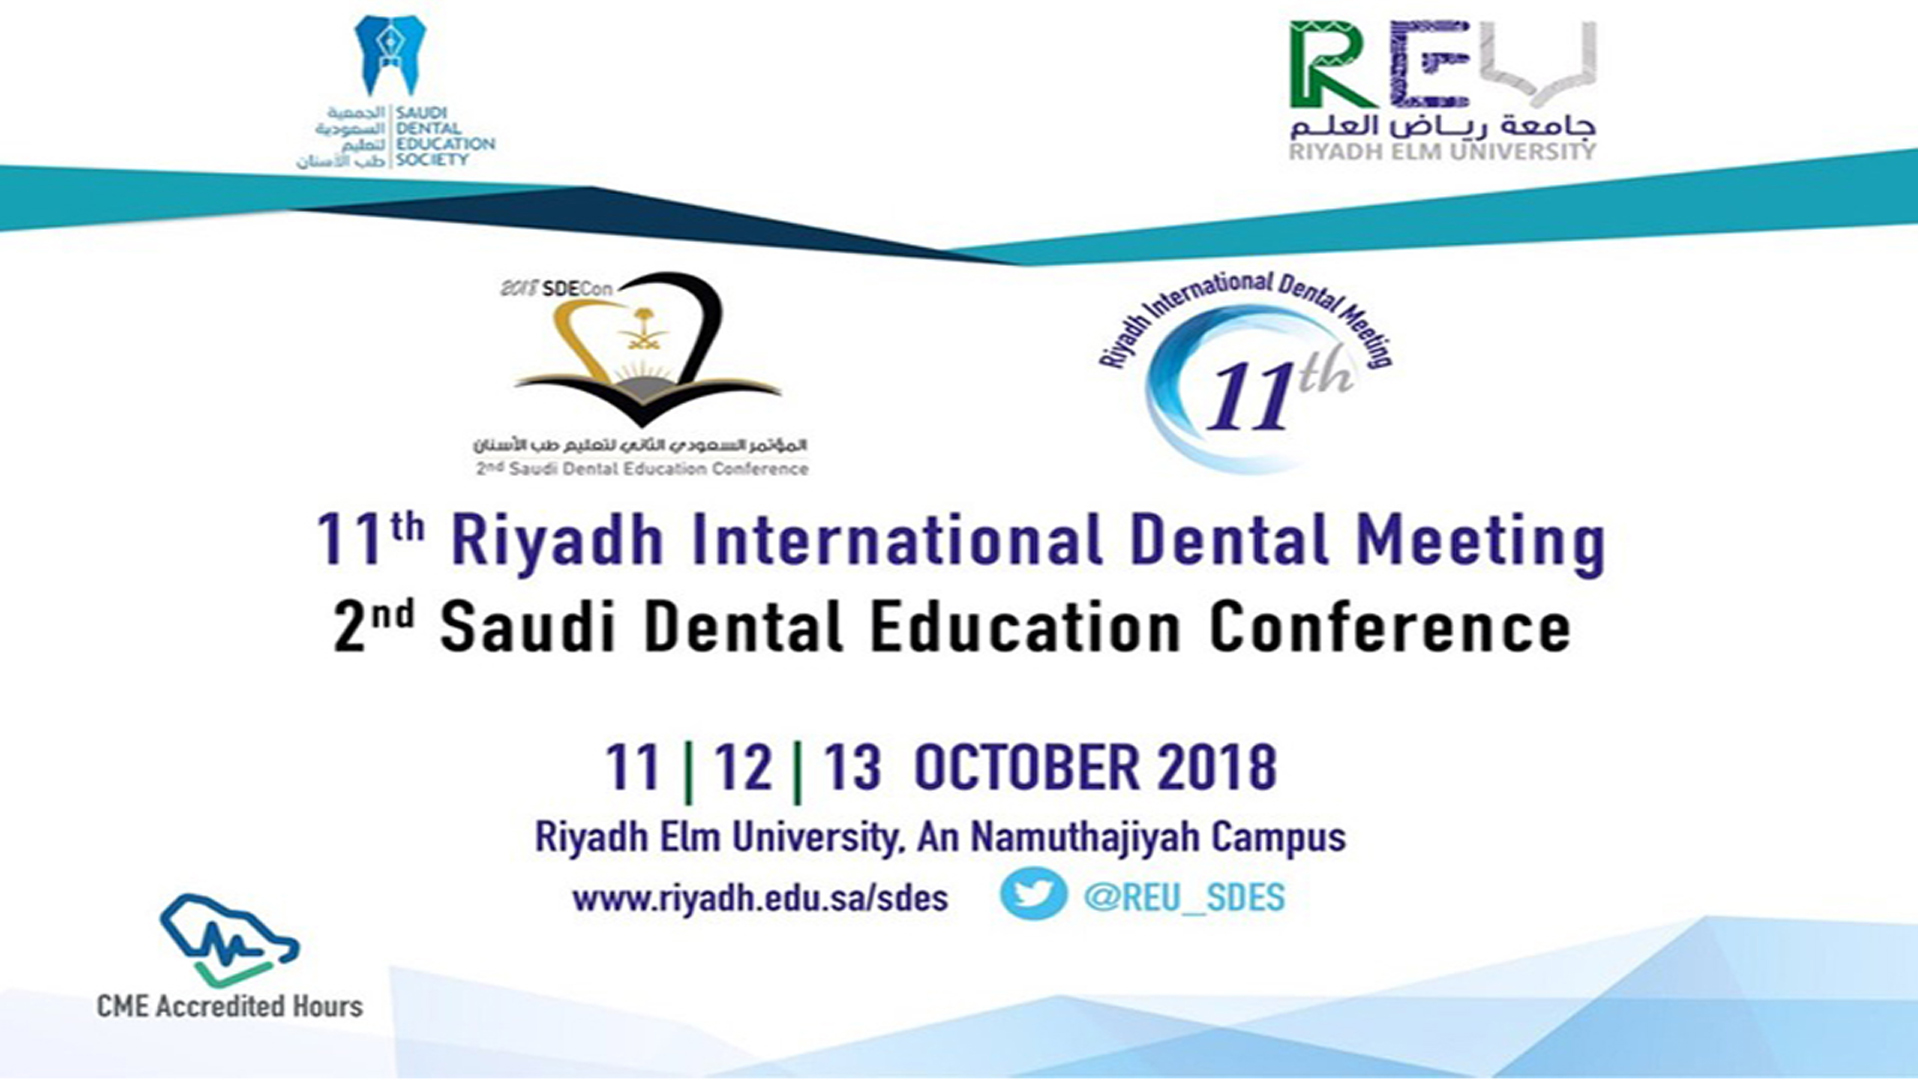 2nd Saudi Dental Education Society Conference and 11th Riyadh International Dental Meeting